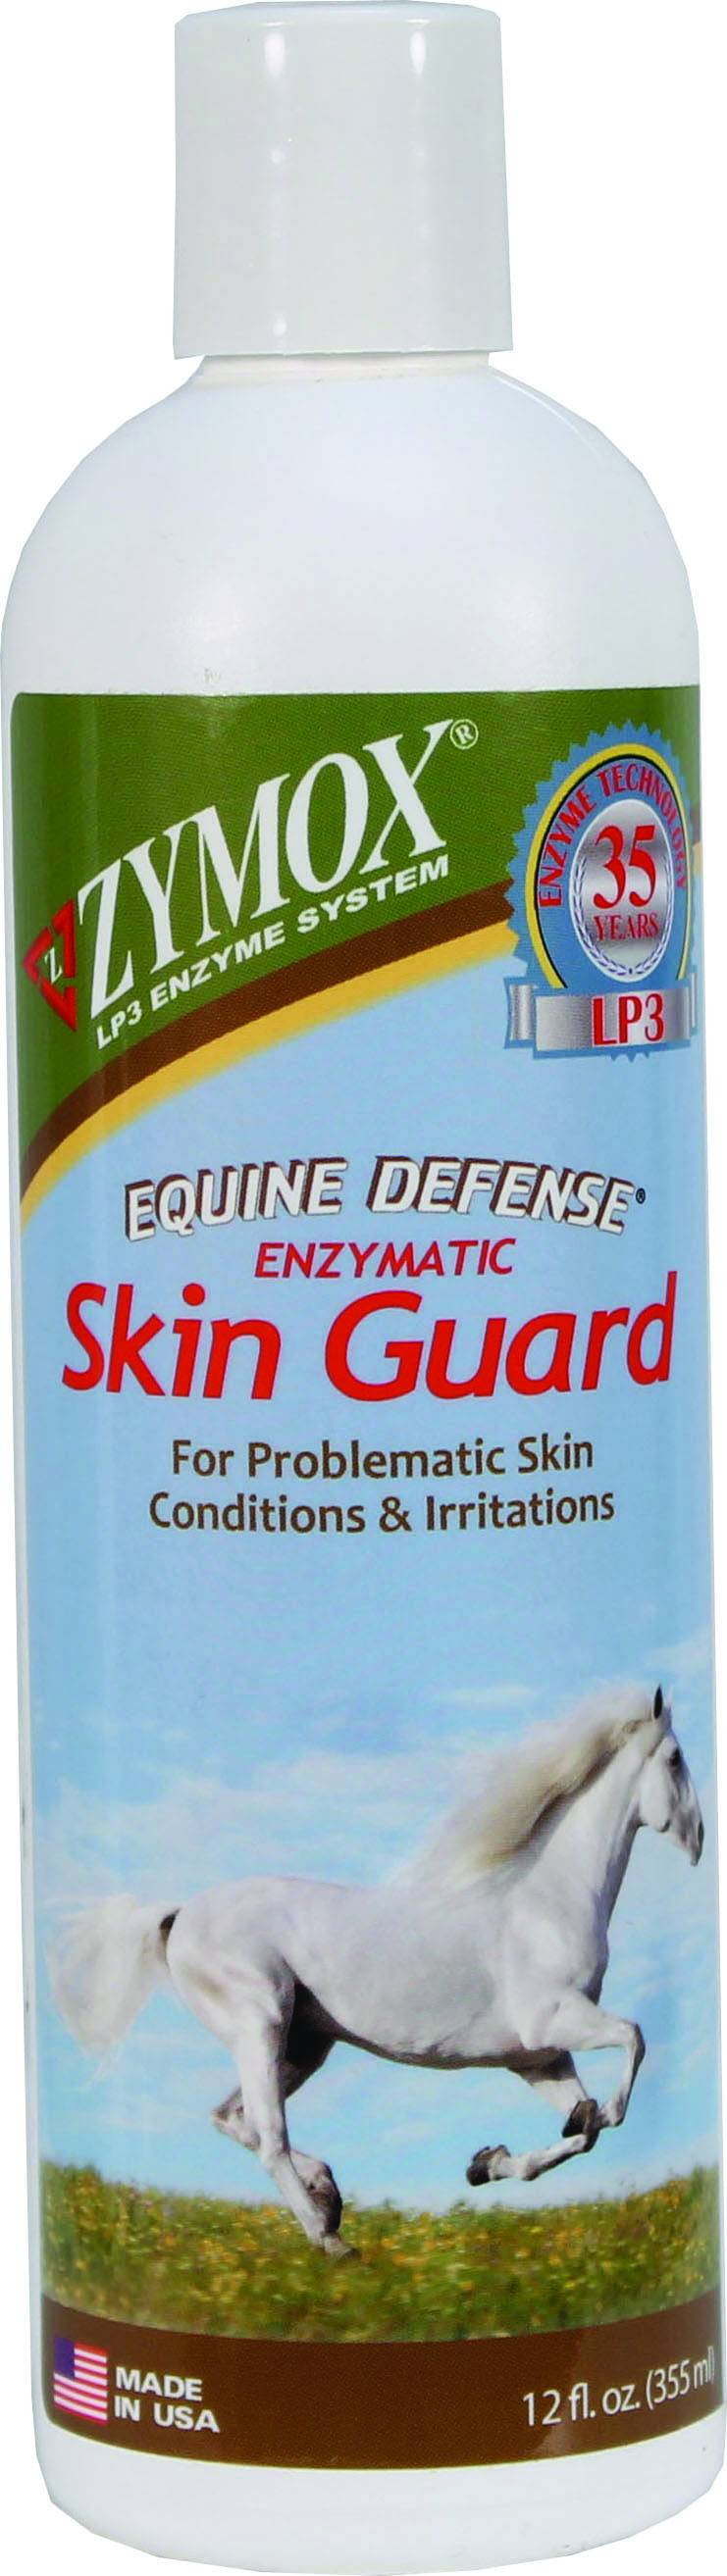 Zymox Equine Defense Skin Guard